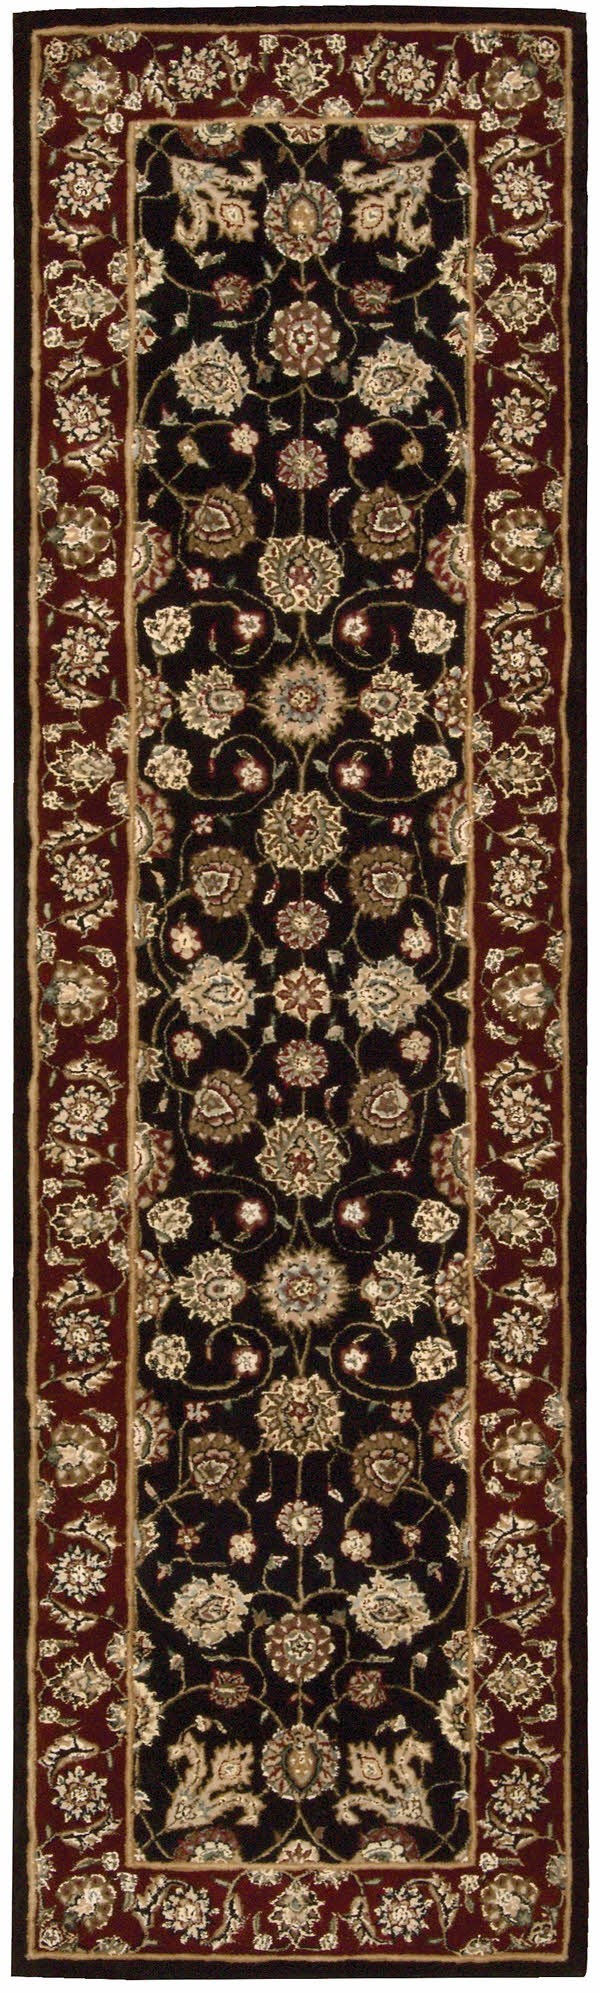 Shop Moroccan Rugs Direct. Find more of what you love on eBay stores!